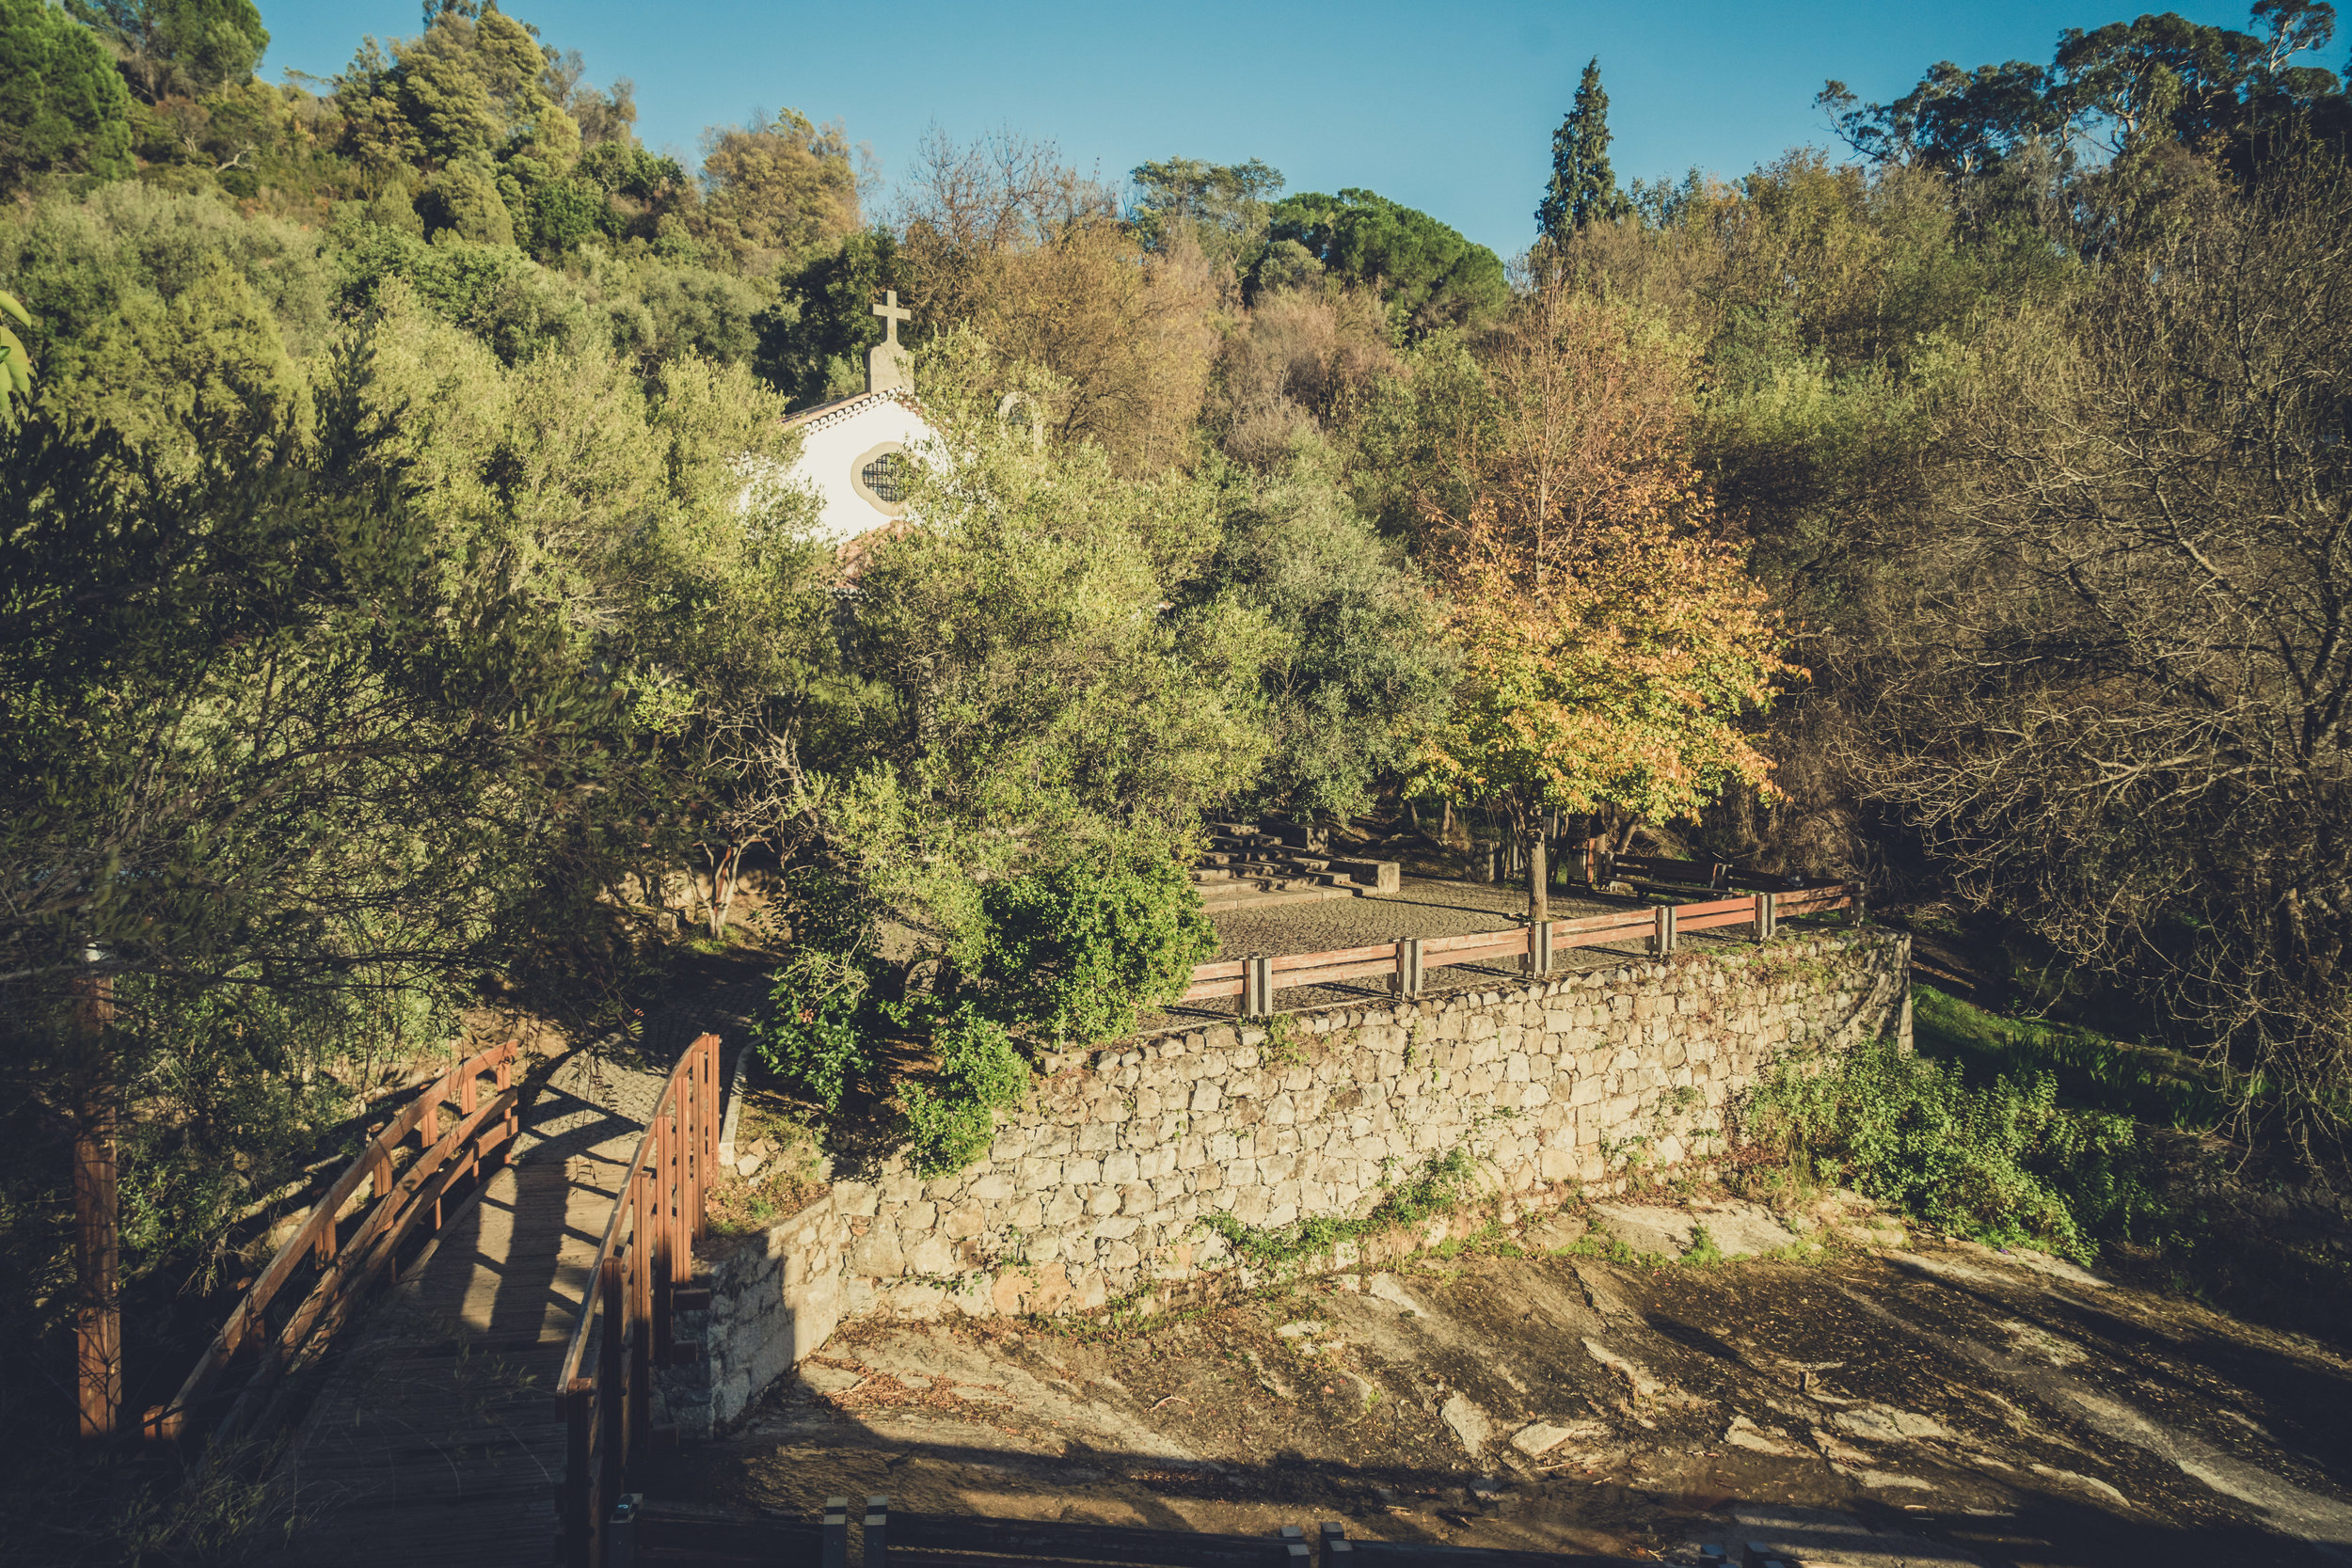 caldas de monchique portugal. walking through the forest. walking through the grounds of the spa. lovely setting. church in the trees.jpg